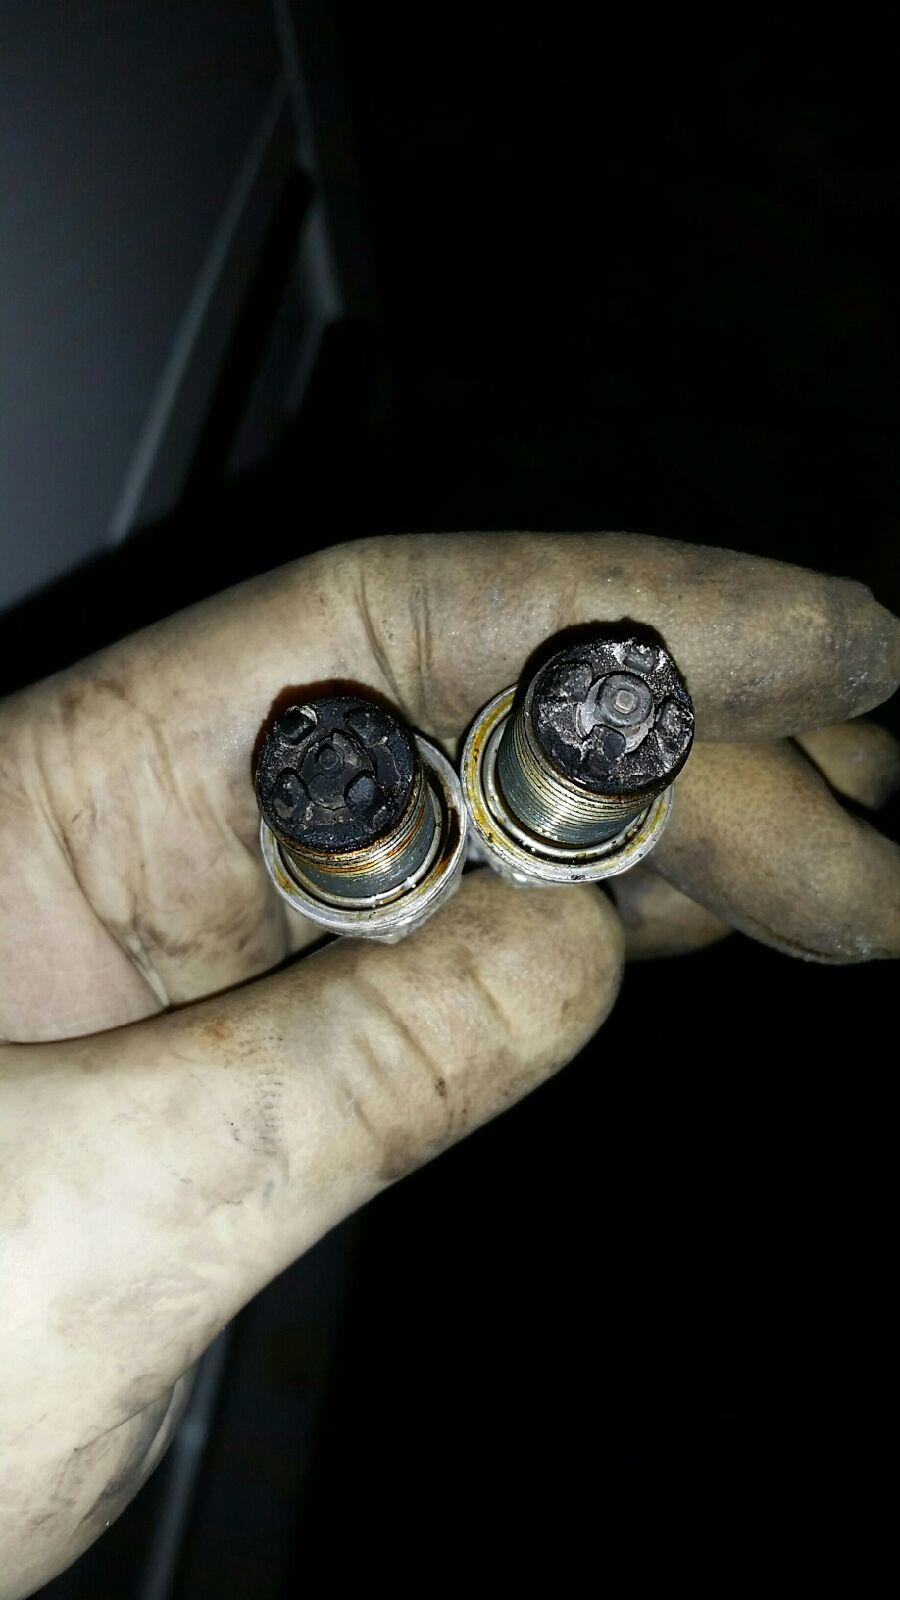 Really Rough Idle - Check Engine Light - Misfire during warm